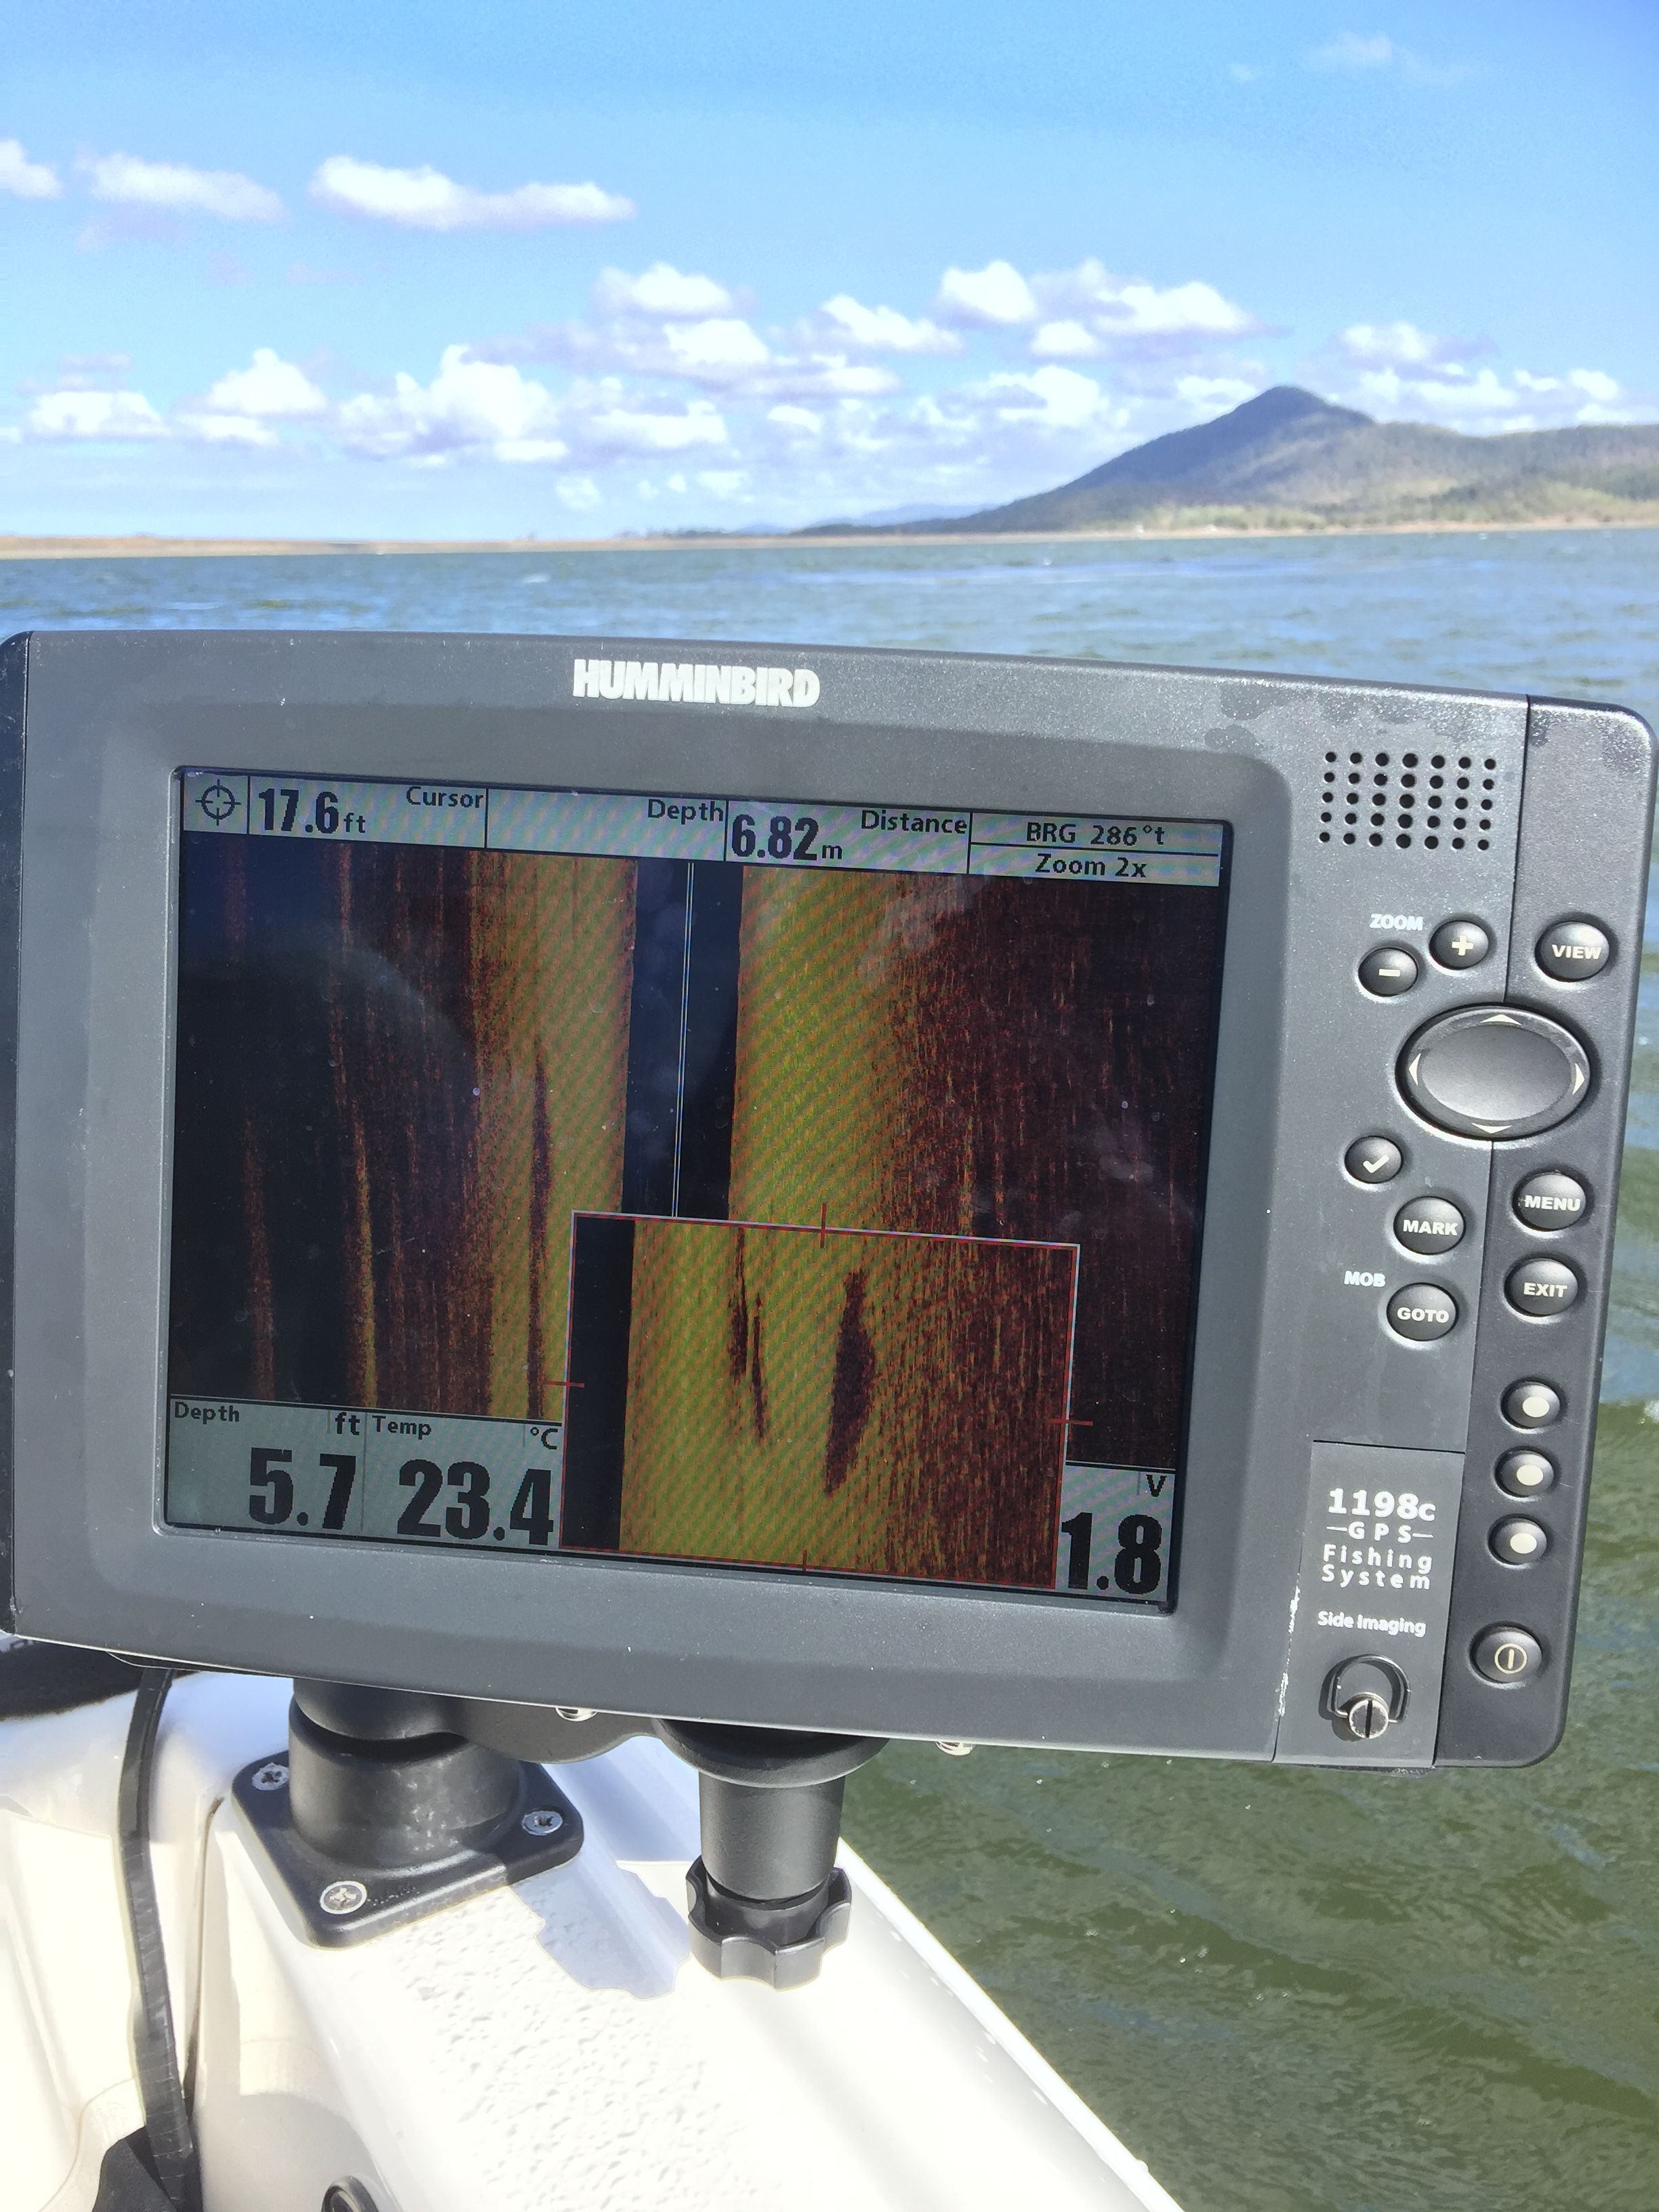 The Humminbird 1198 SI sounder showed barra coming through to the right of the boat.